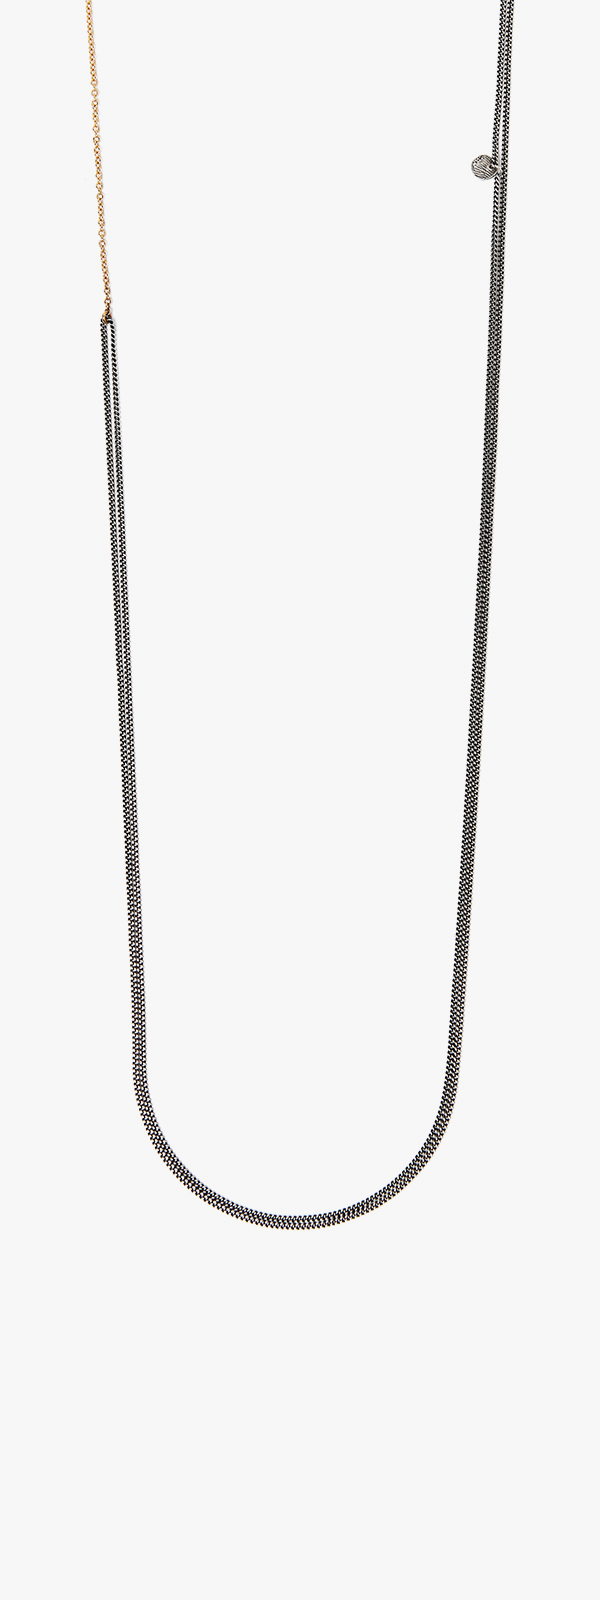 Image of Mixed Metal Necklace 093